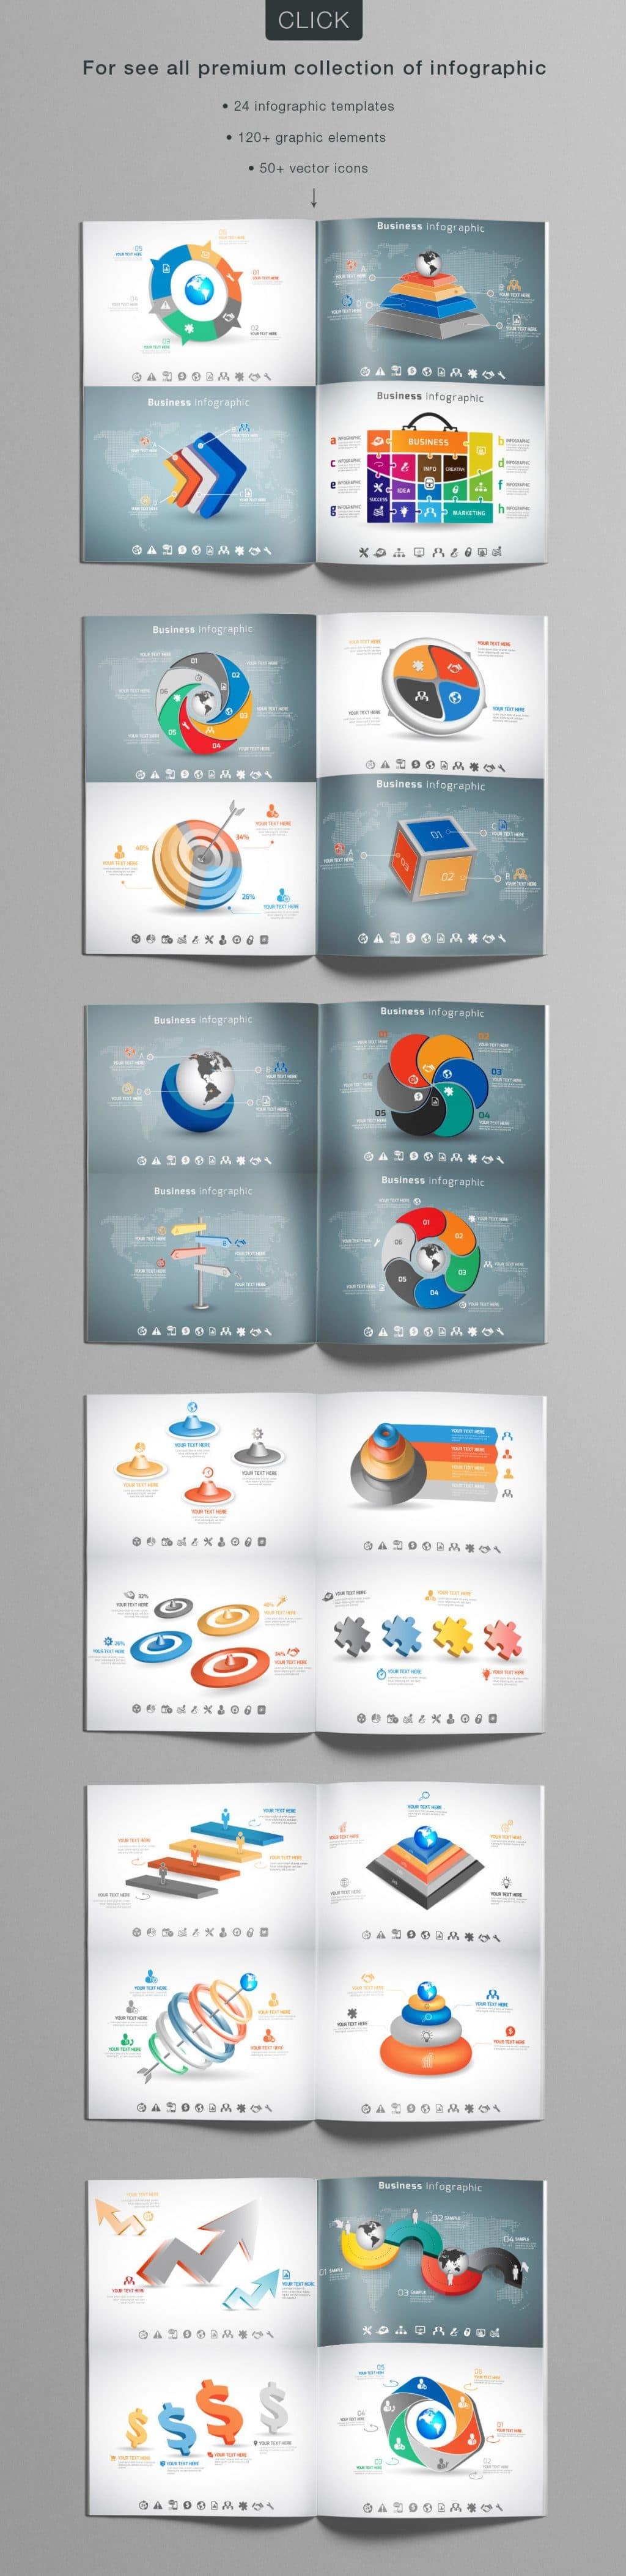 24 Premium Collection of Infographics - $9 - 07